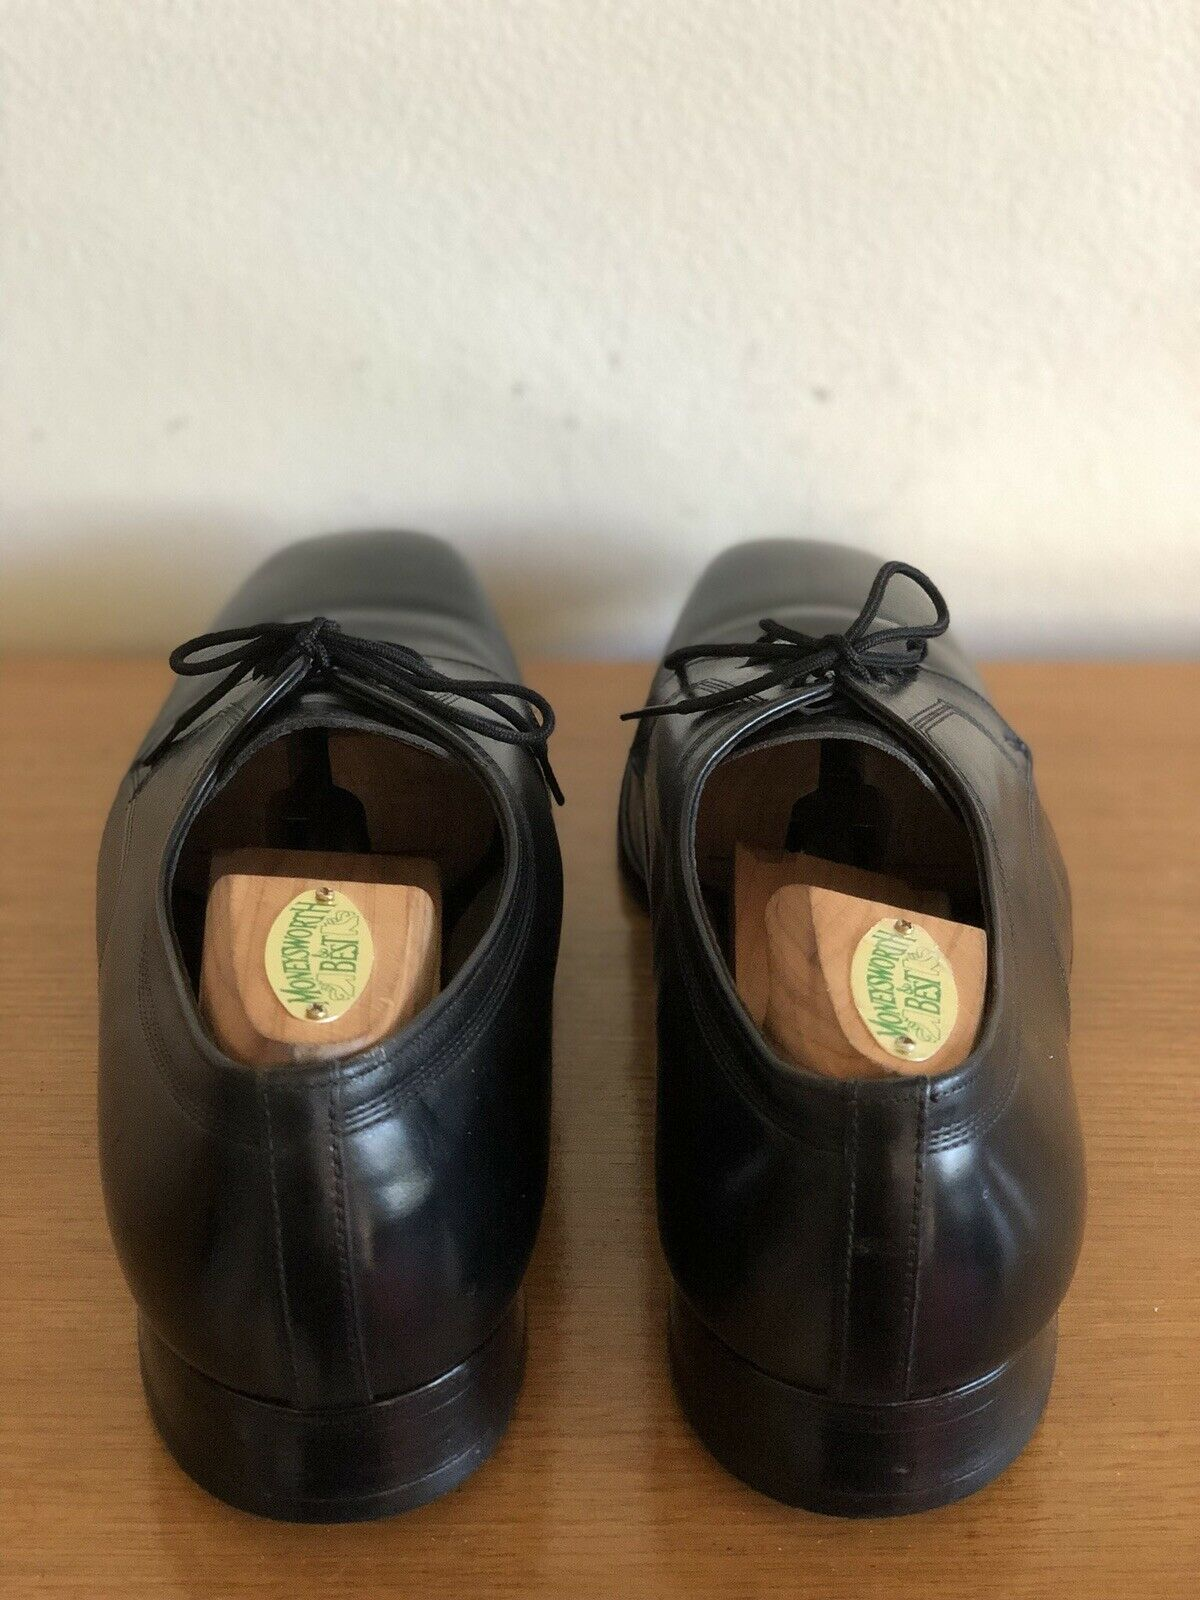 Florsheim Australia    Lace-up Brogues Black Leather Welted - Size 9 EE Standard c533e6